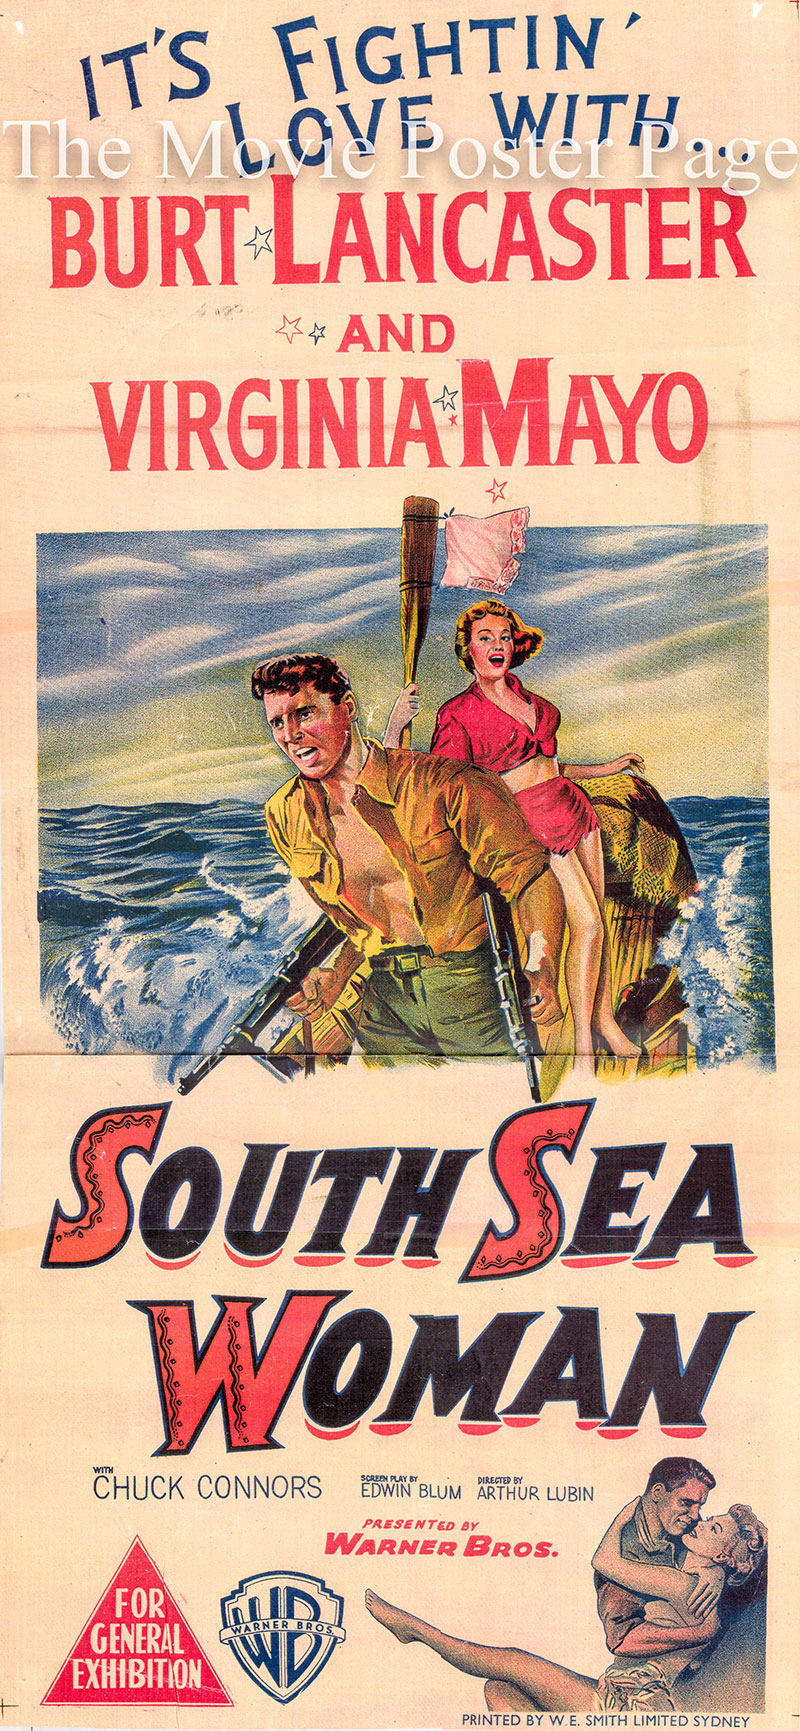 Pictured is an Australian daybill poster for the 1953 Arthur Lubin film South Sea Woman starring Burt Lancaster as Master Gunnery Sergeant James O'Hearn.